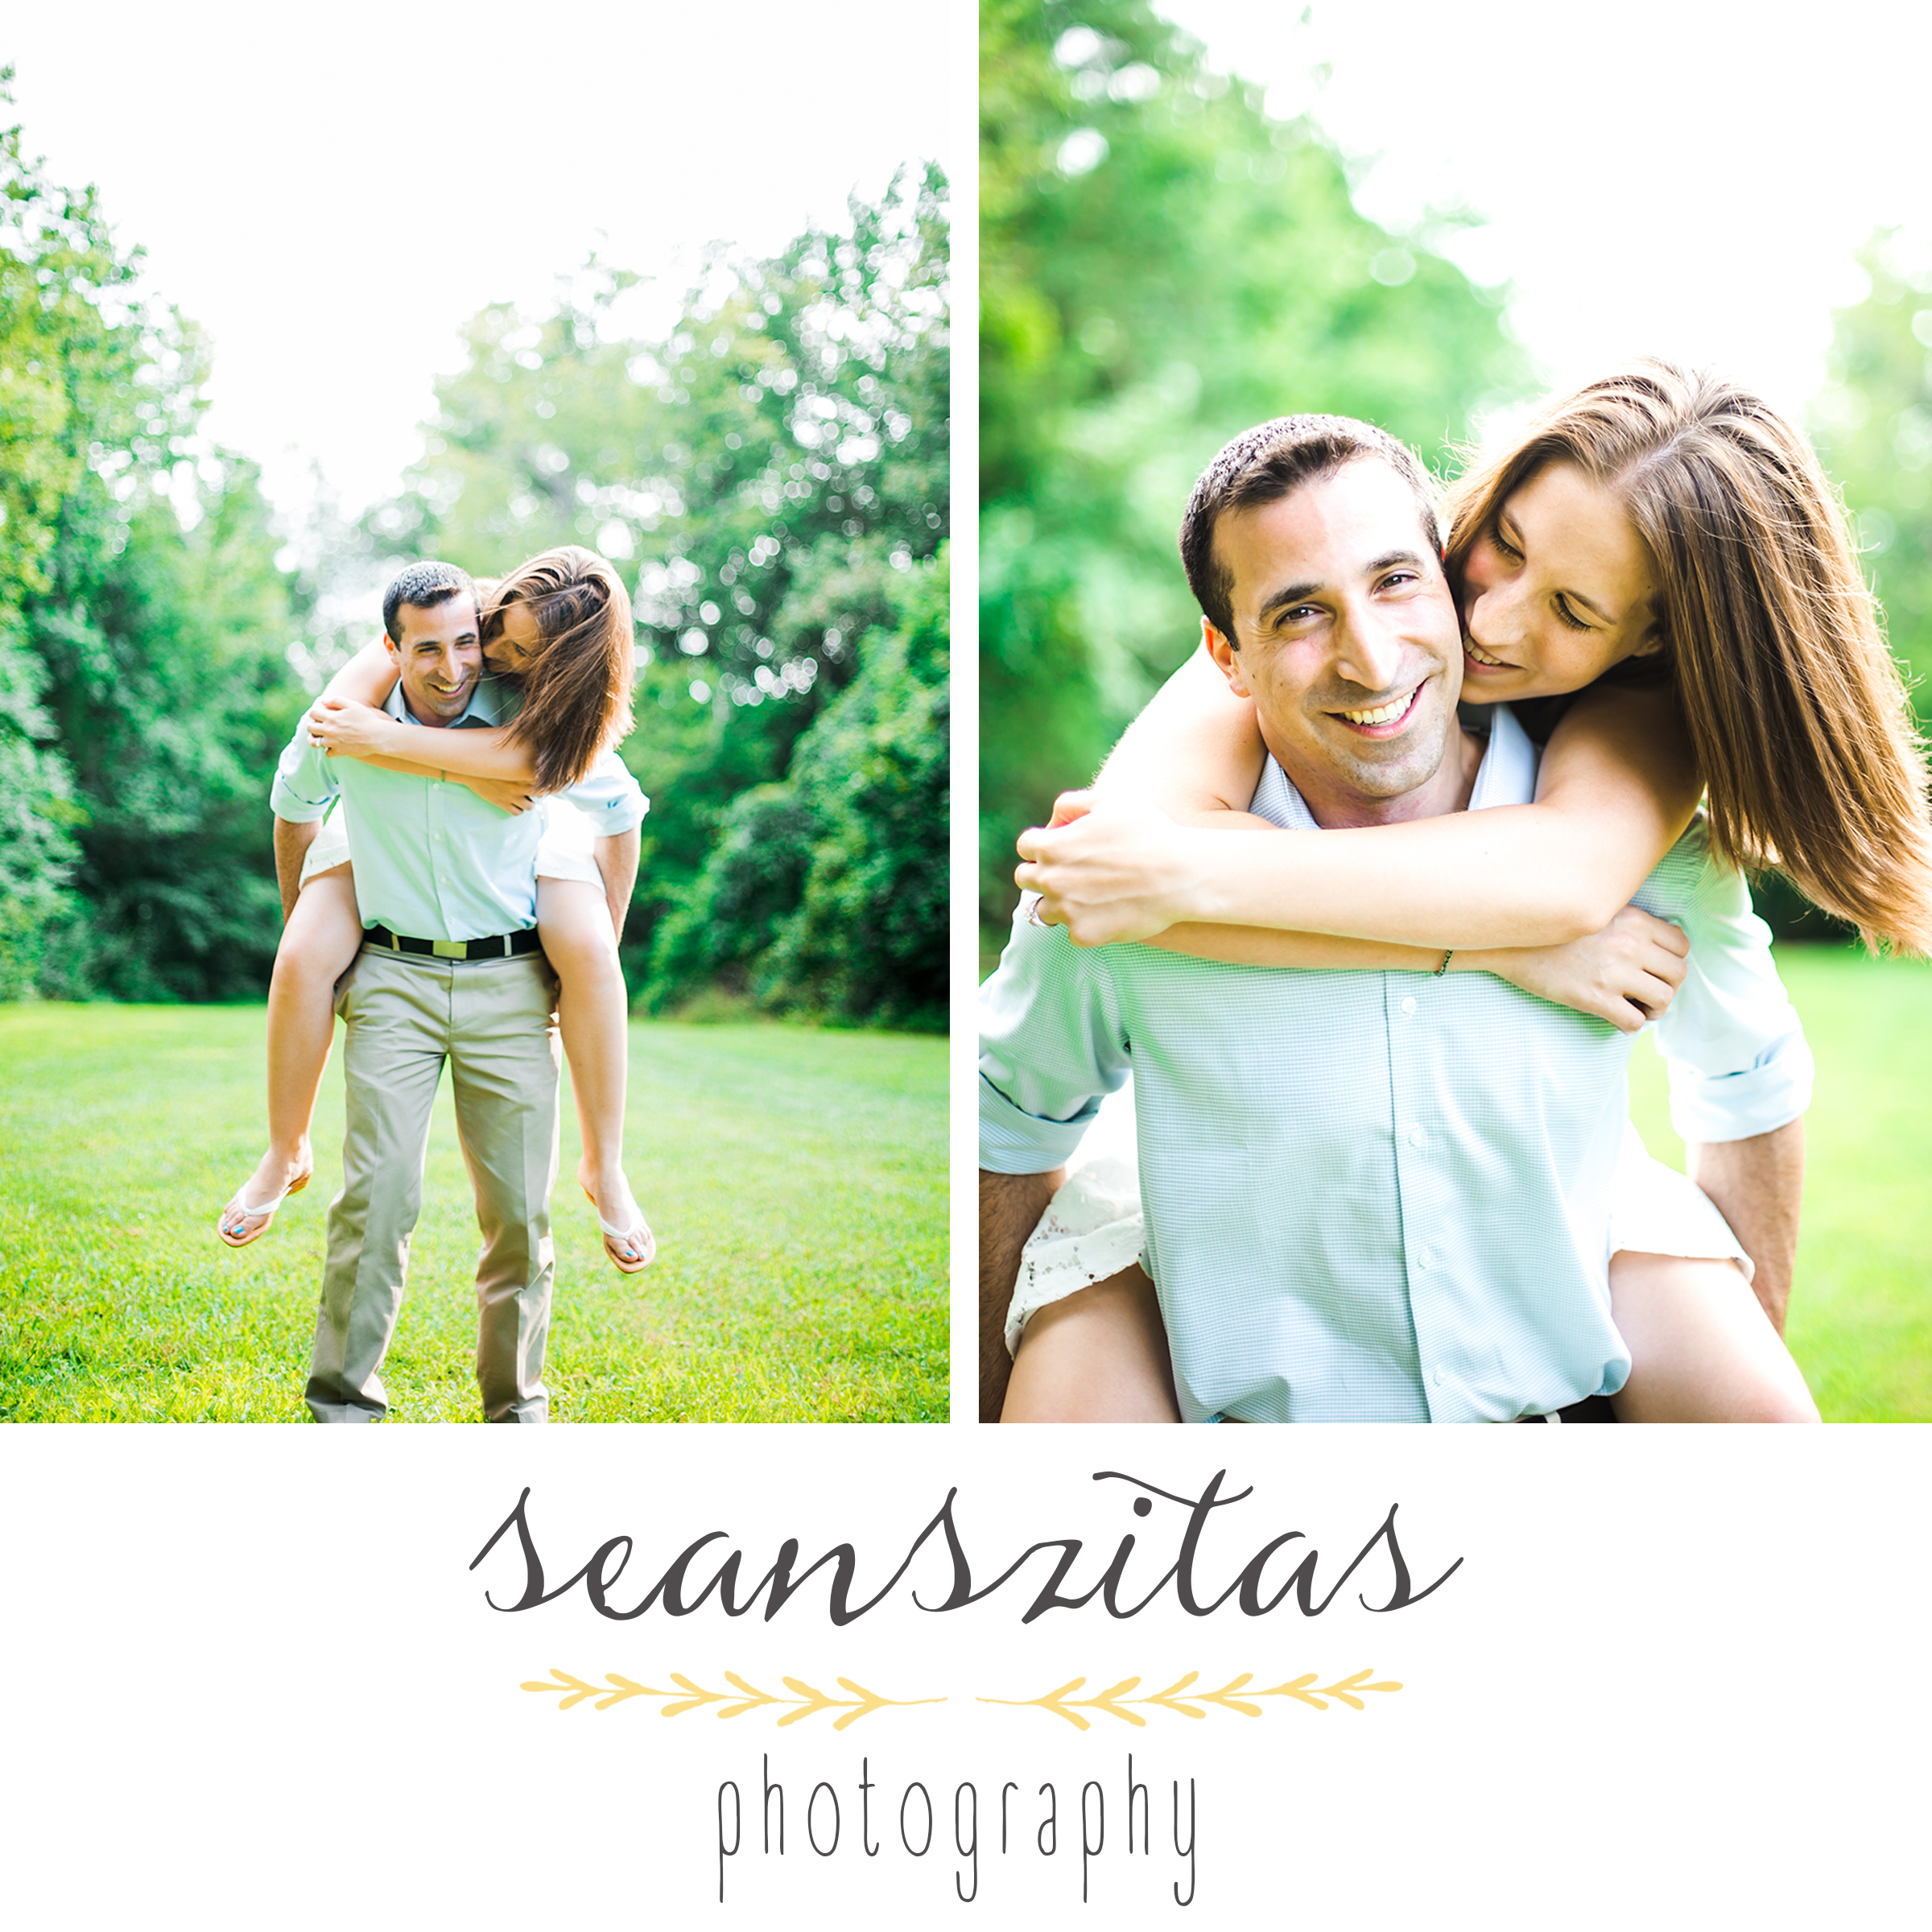 durham, sean szitas photography, engagement session